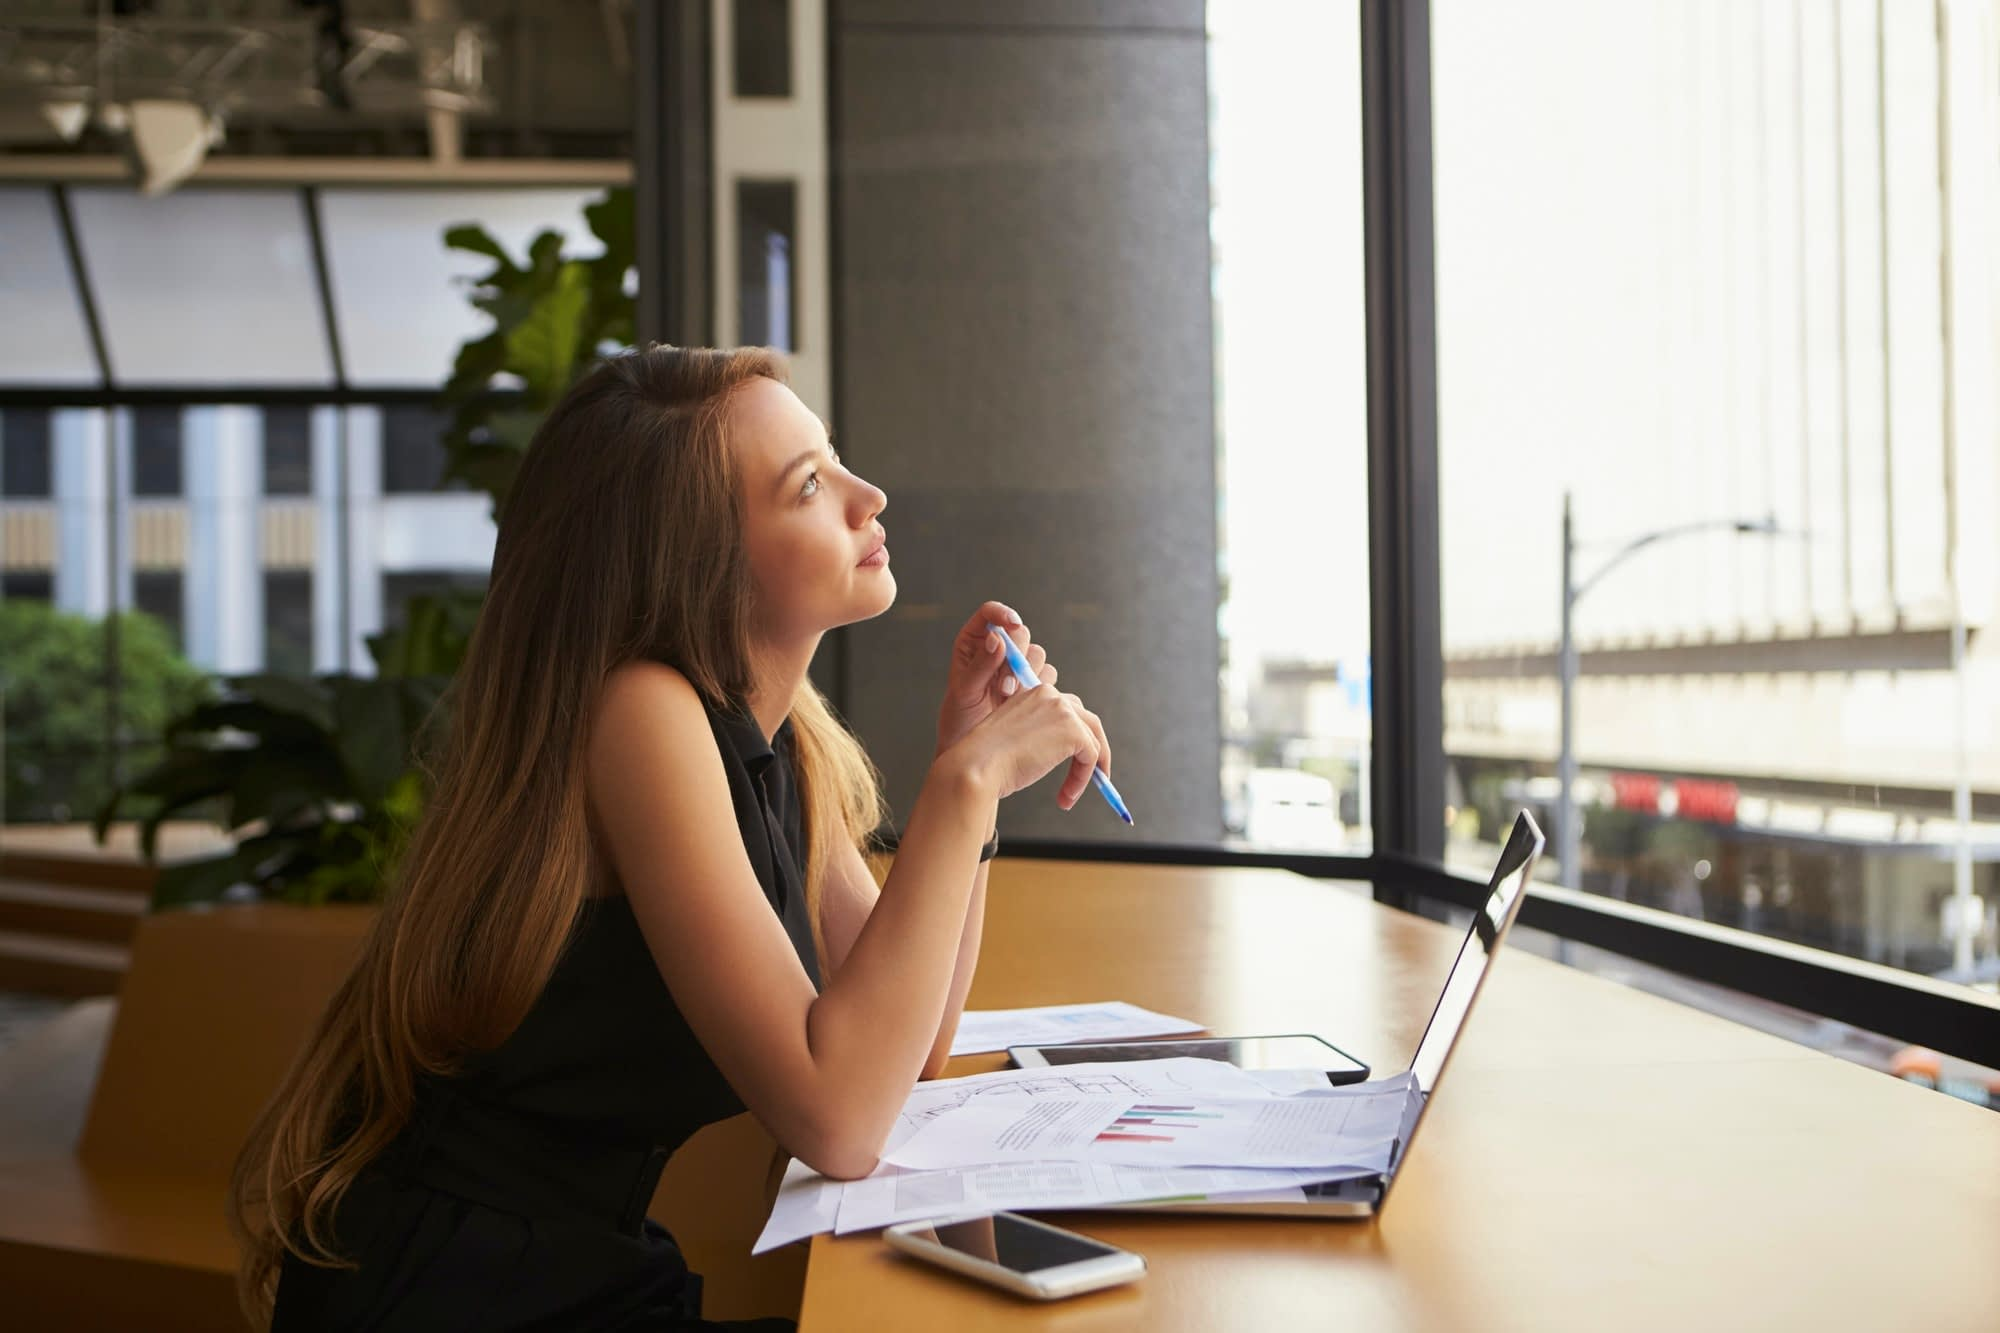 Businesswoman working in an office looking out of the window